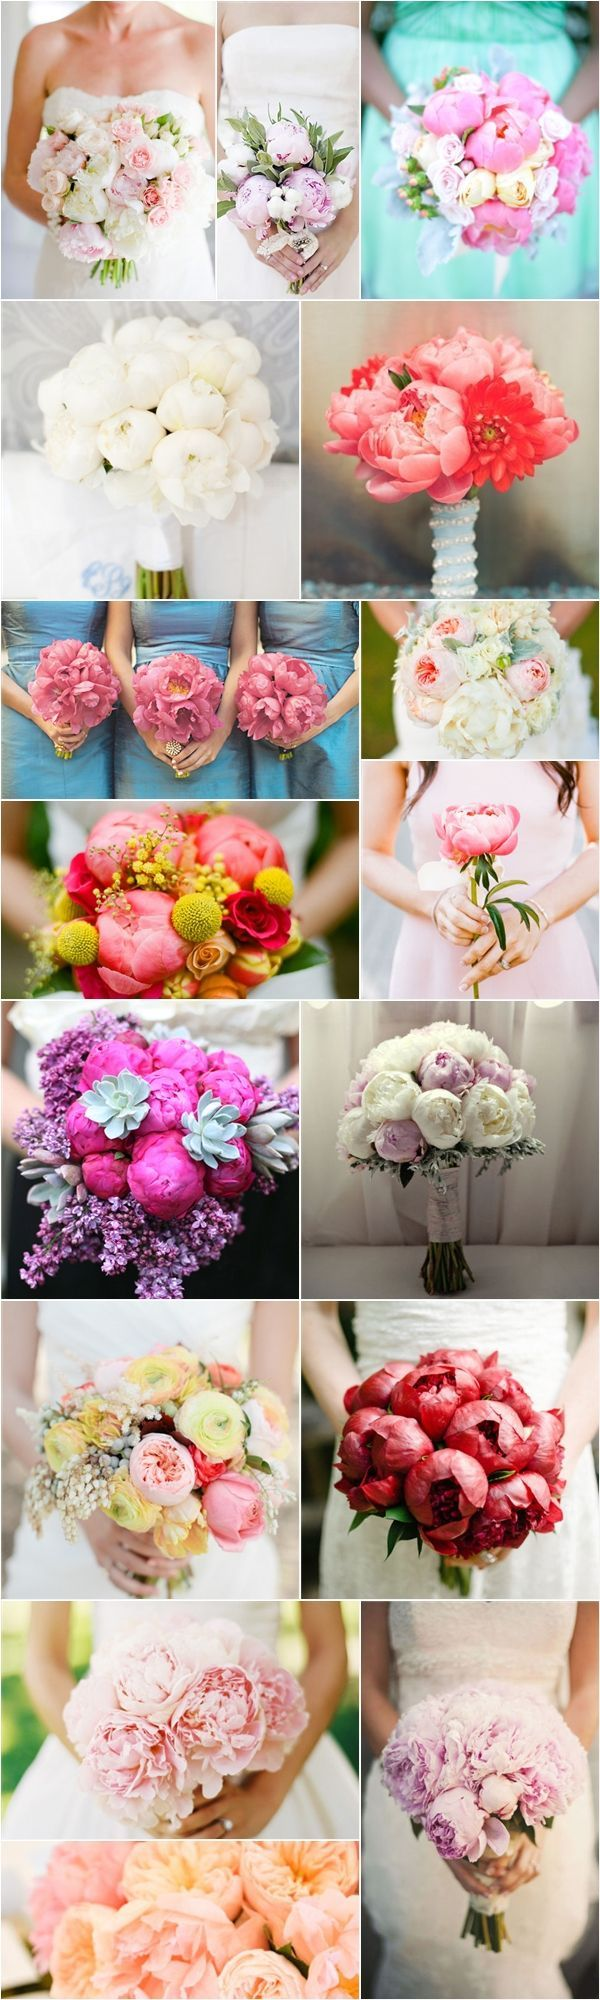 10 Best Winter Flowers Images On Pinterest Floral Arrangements